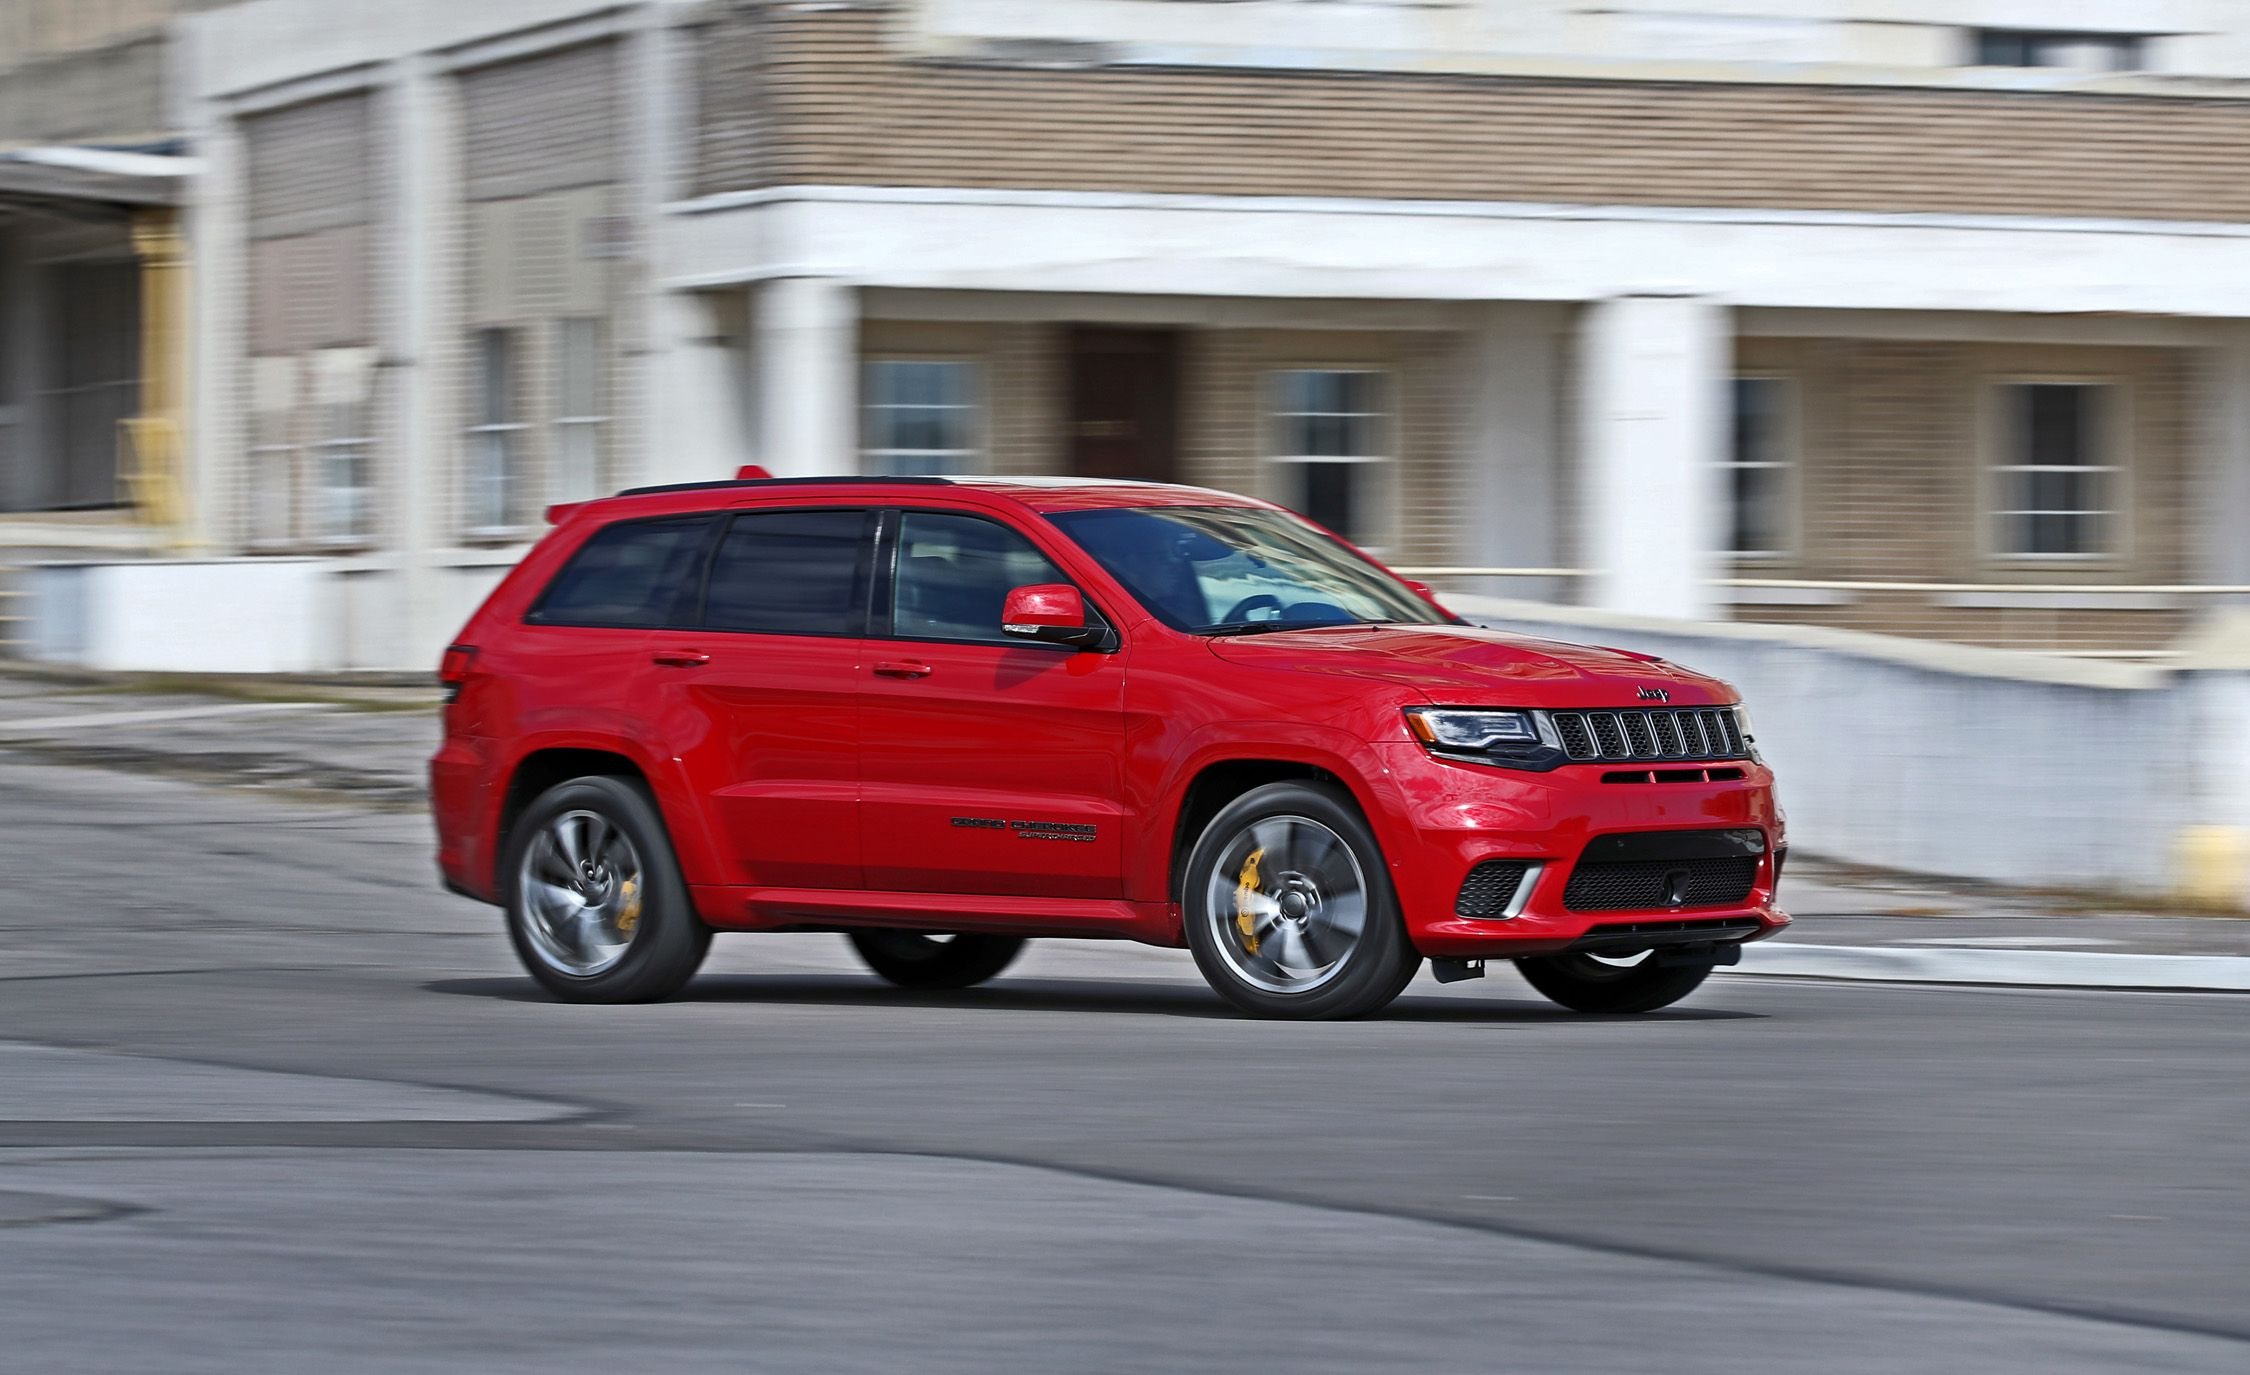 jeep grand cherokee trackhawk reviews jeep grand cherokee trackhawk price   specs